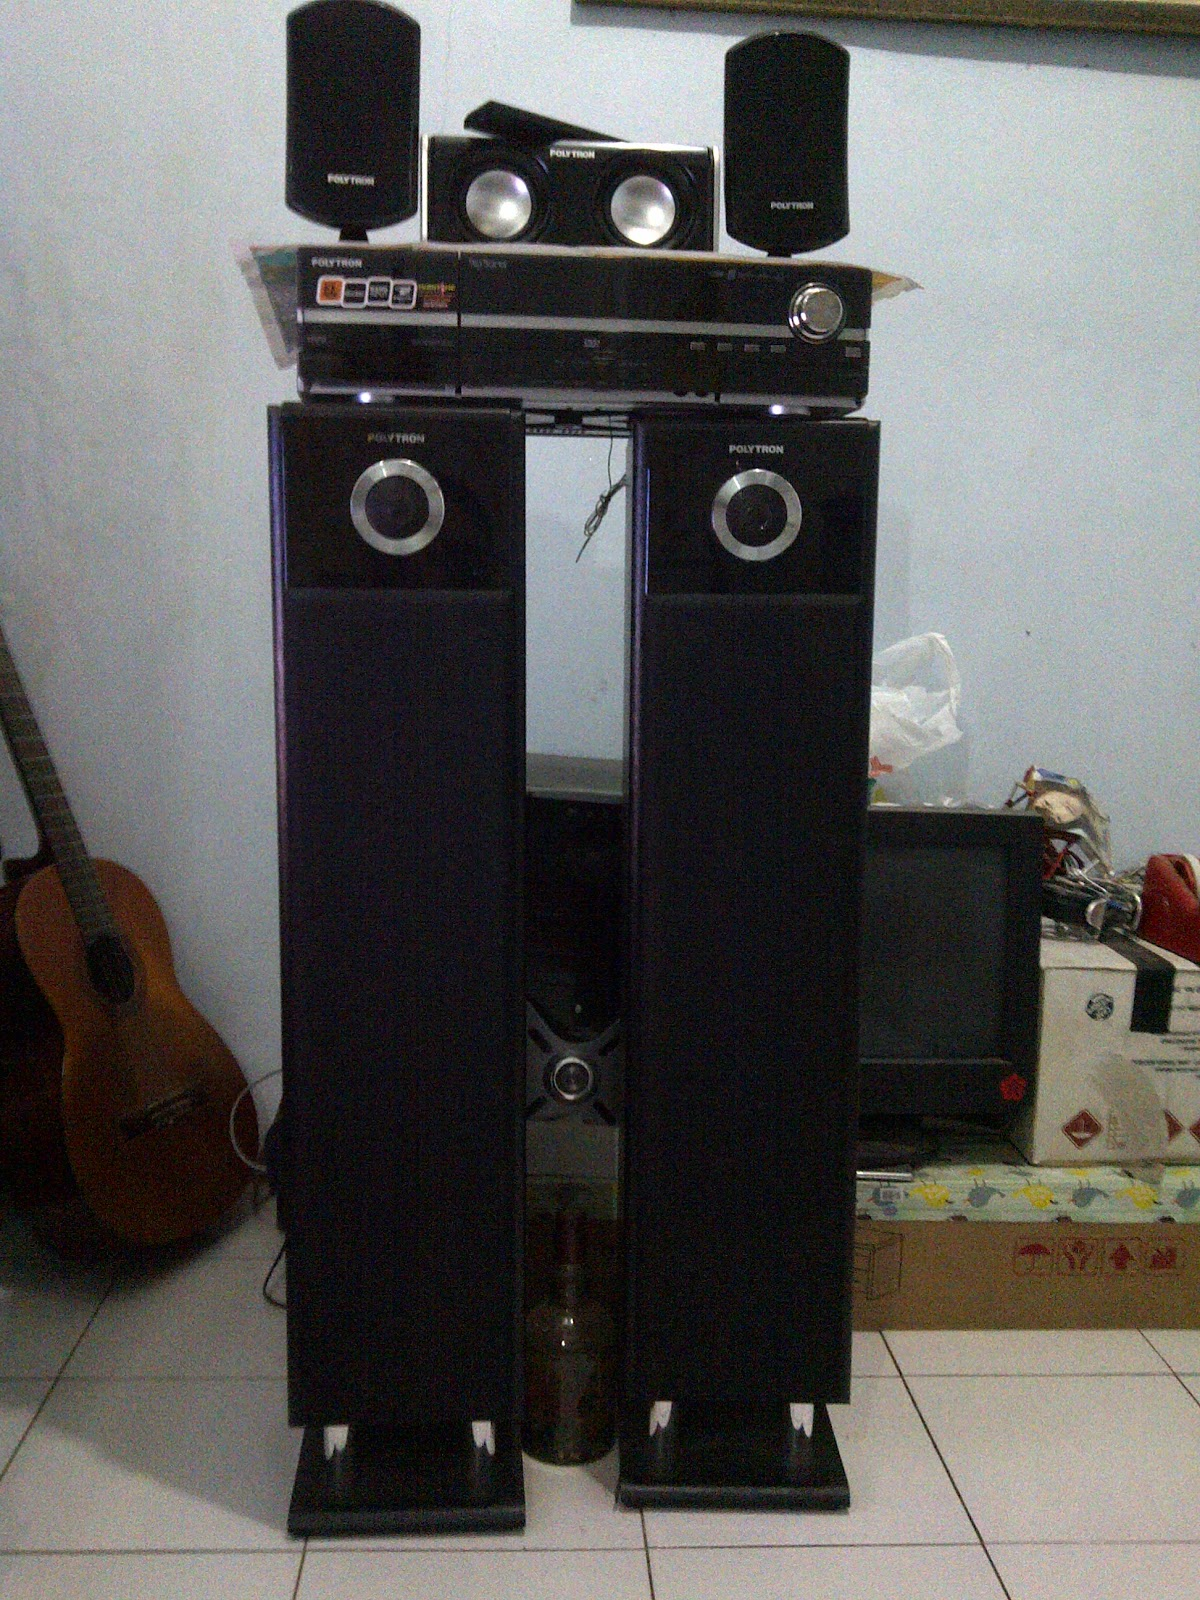 Home theater speakers height, lg home theater manuals, harga